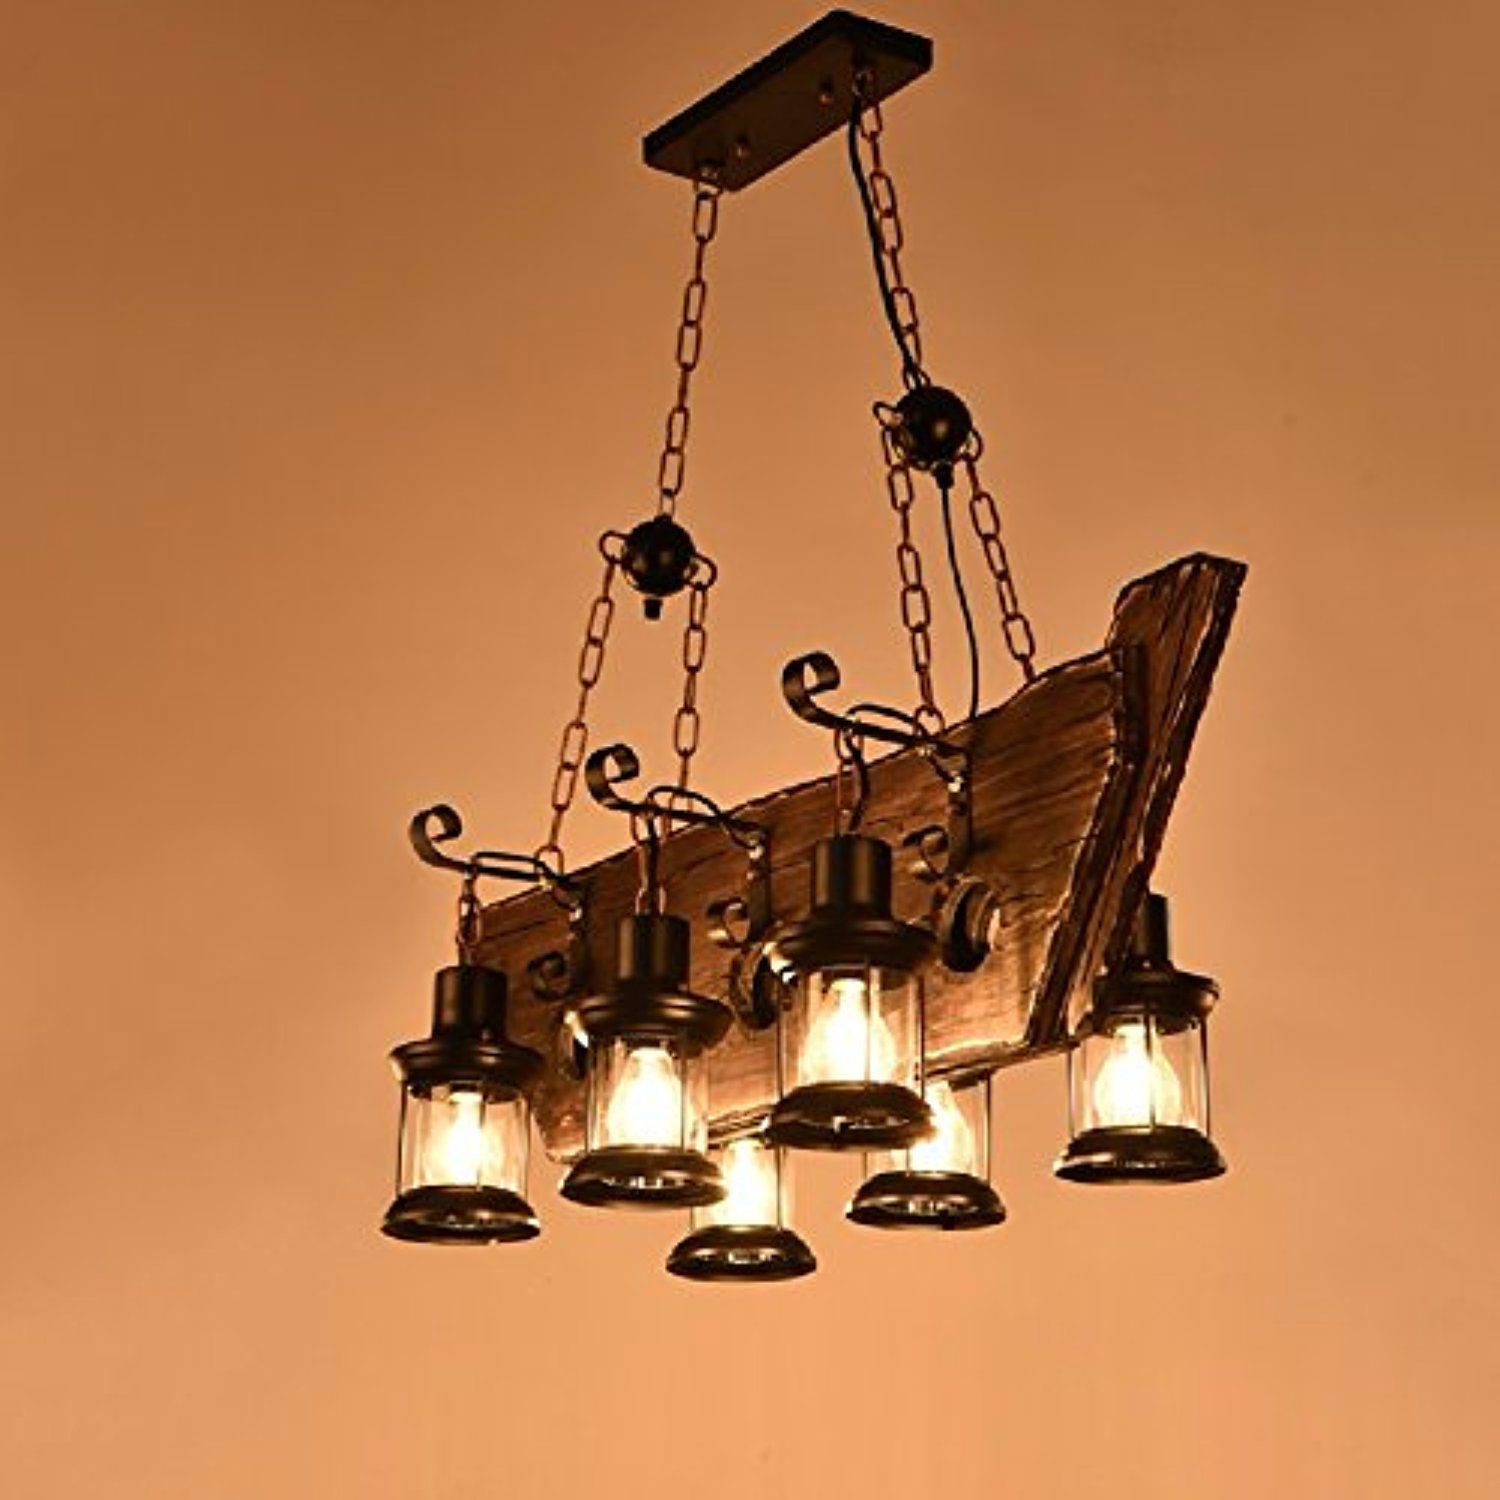 HQLCX Chandelier American style retro industrial wind solid wood